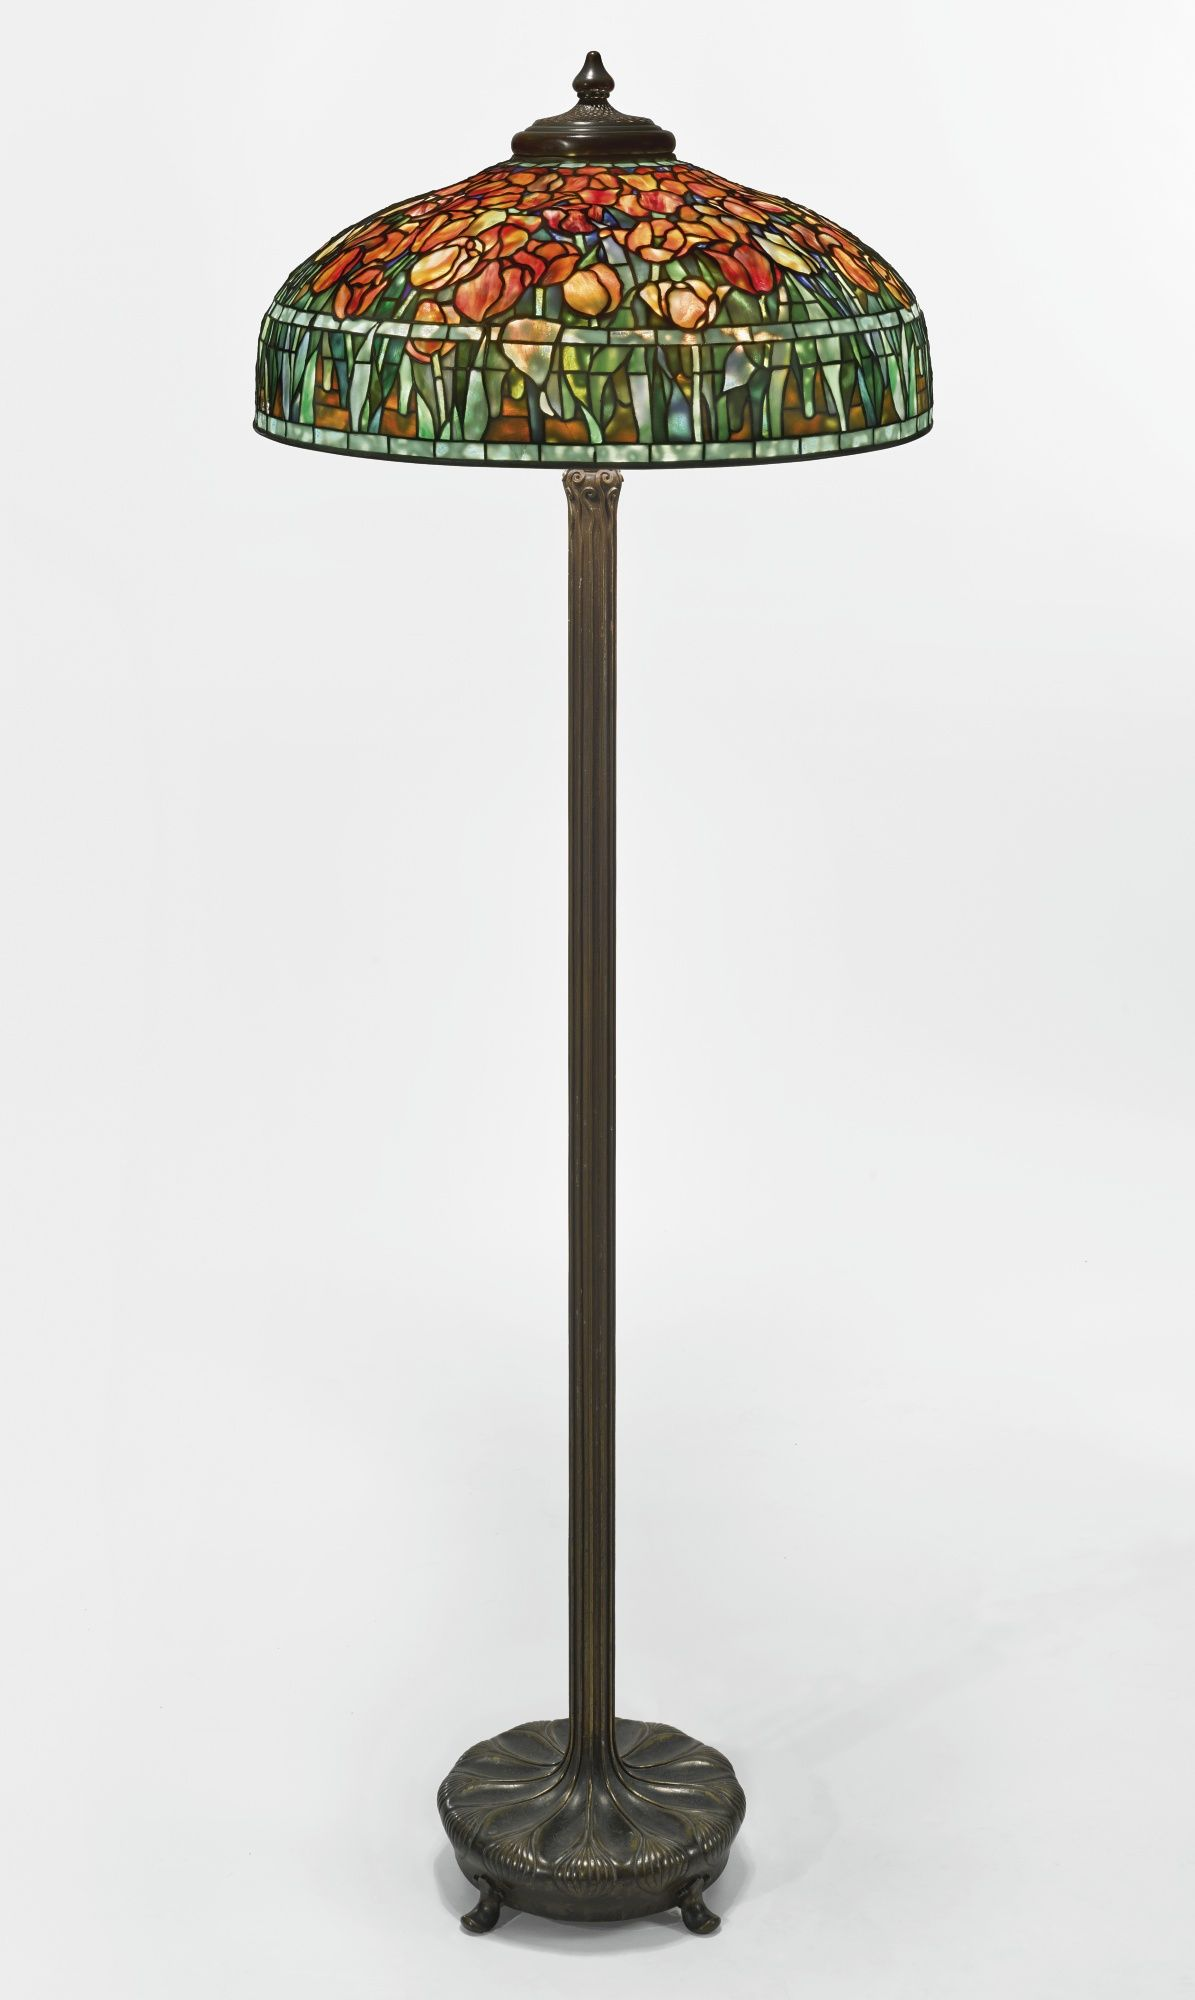 Lamp Glas In Lood Tiffany Studios